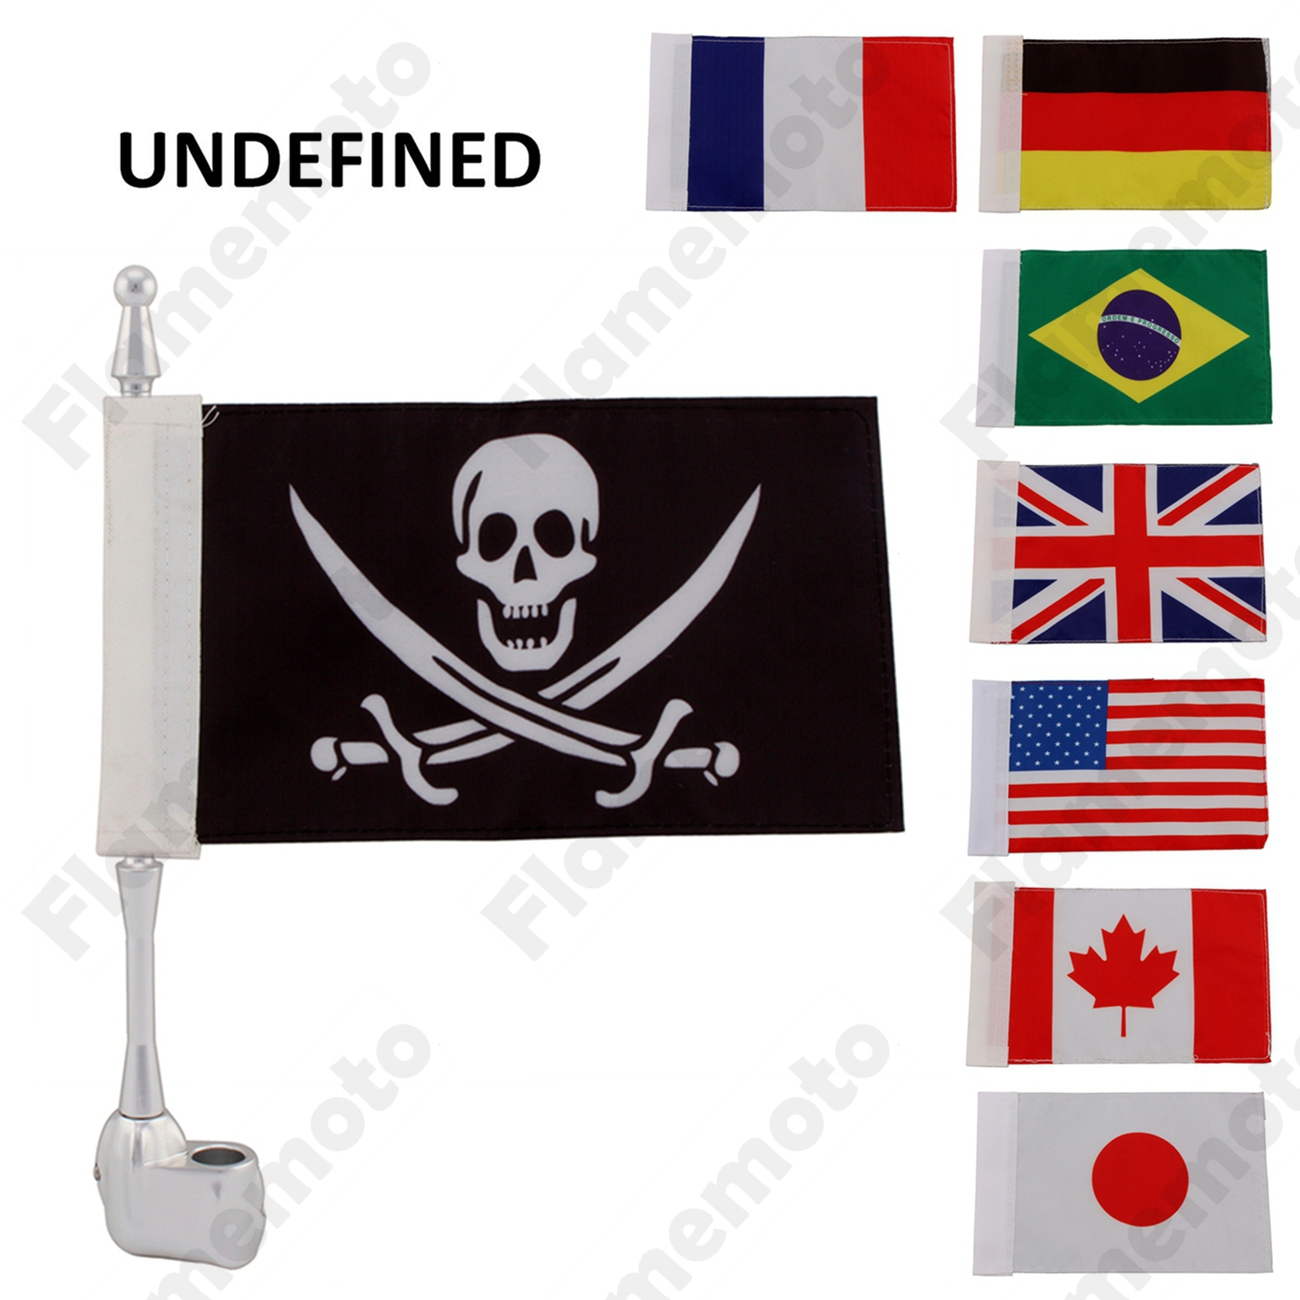 Universal Aluminum Good Quality Motorcycle Accessories Small Silver Mount Flag Pole with Flag Kit For Harley UNDEFINED kitavt75417unv10200 value kit advantus id badge holder chain avt75417 and universal small binder clips unv10200